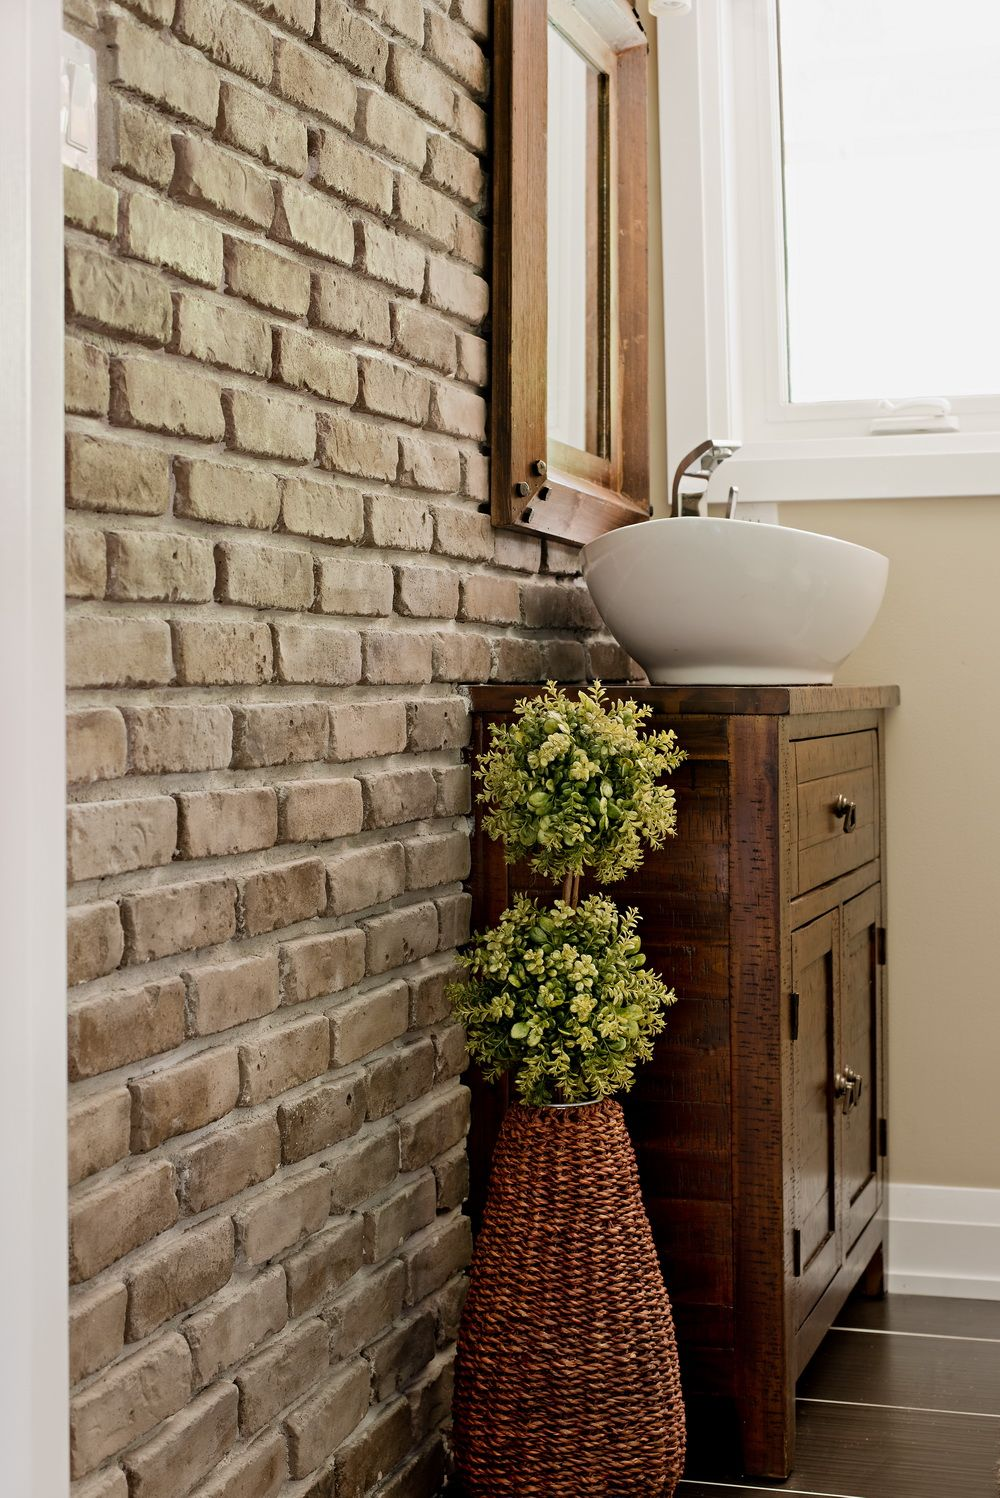 Stone selex thin brick veneer bathroom wall bathroom stone selex thin brick veneer bathroom wall doublecrazyfo Choice Image